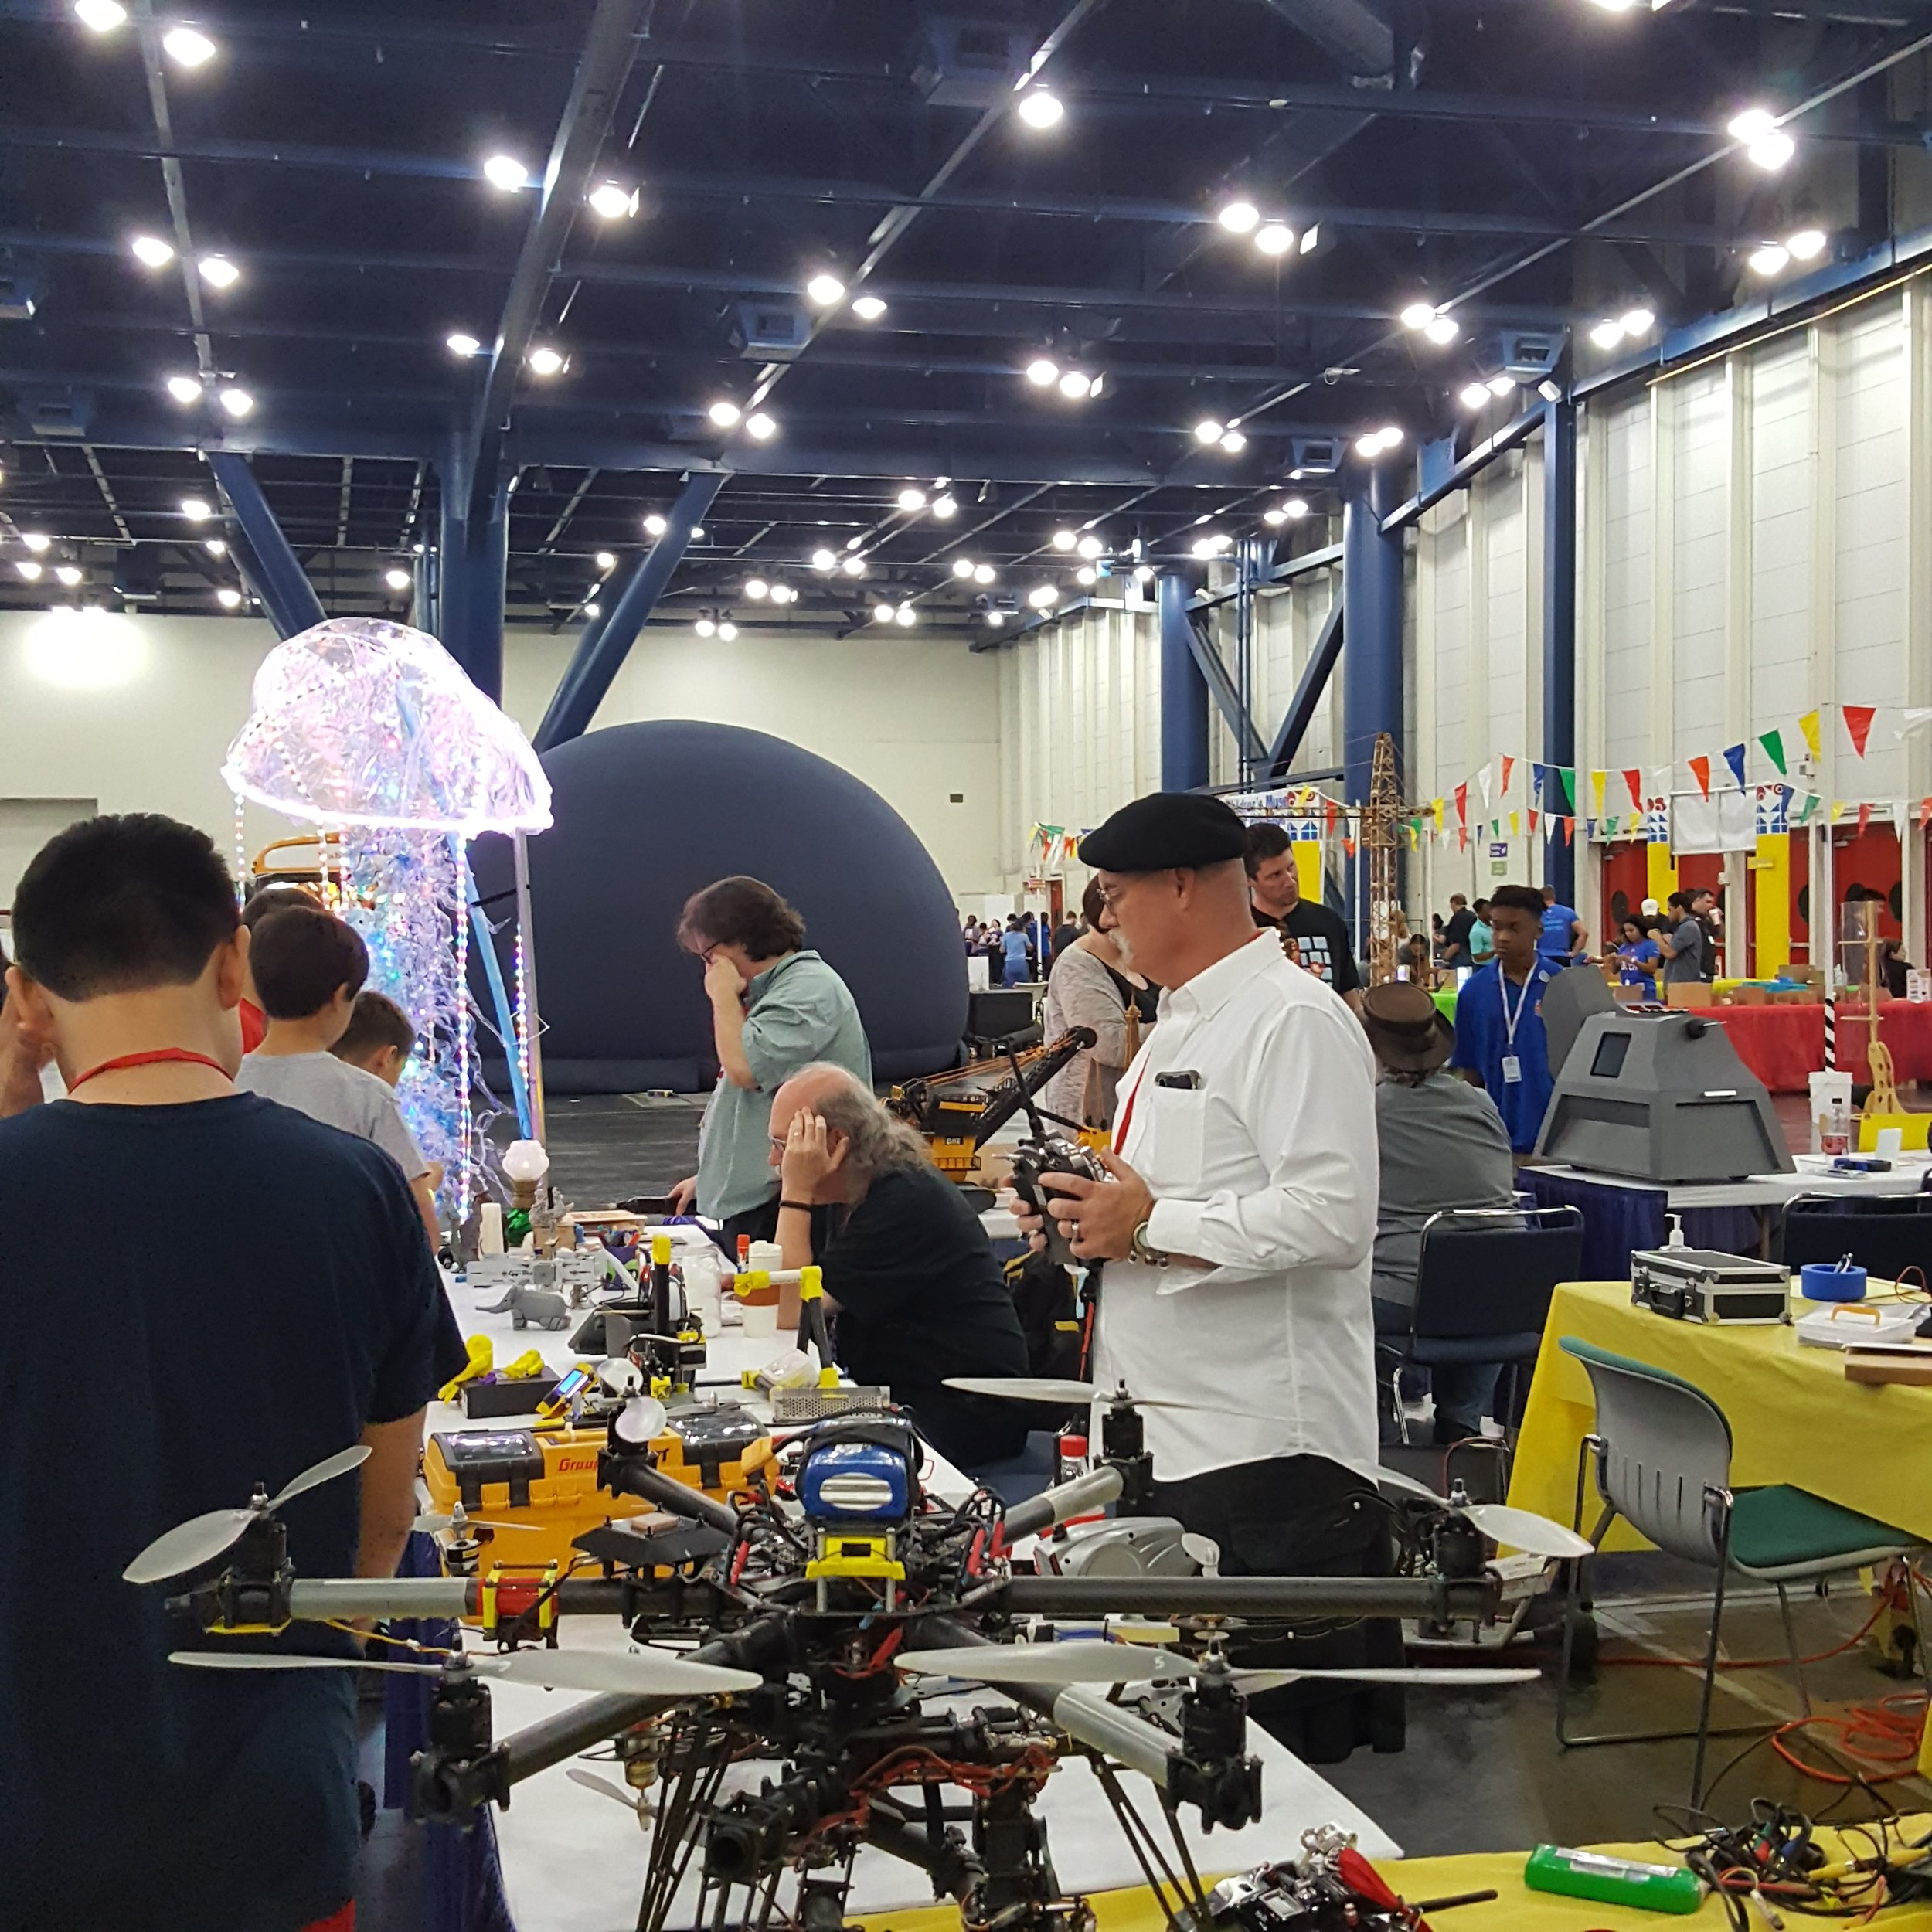 Legos and Drones and LEDs, oh my! Houston Maker Faire was an exciting venue.